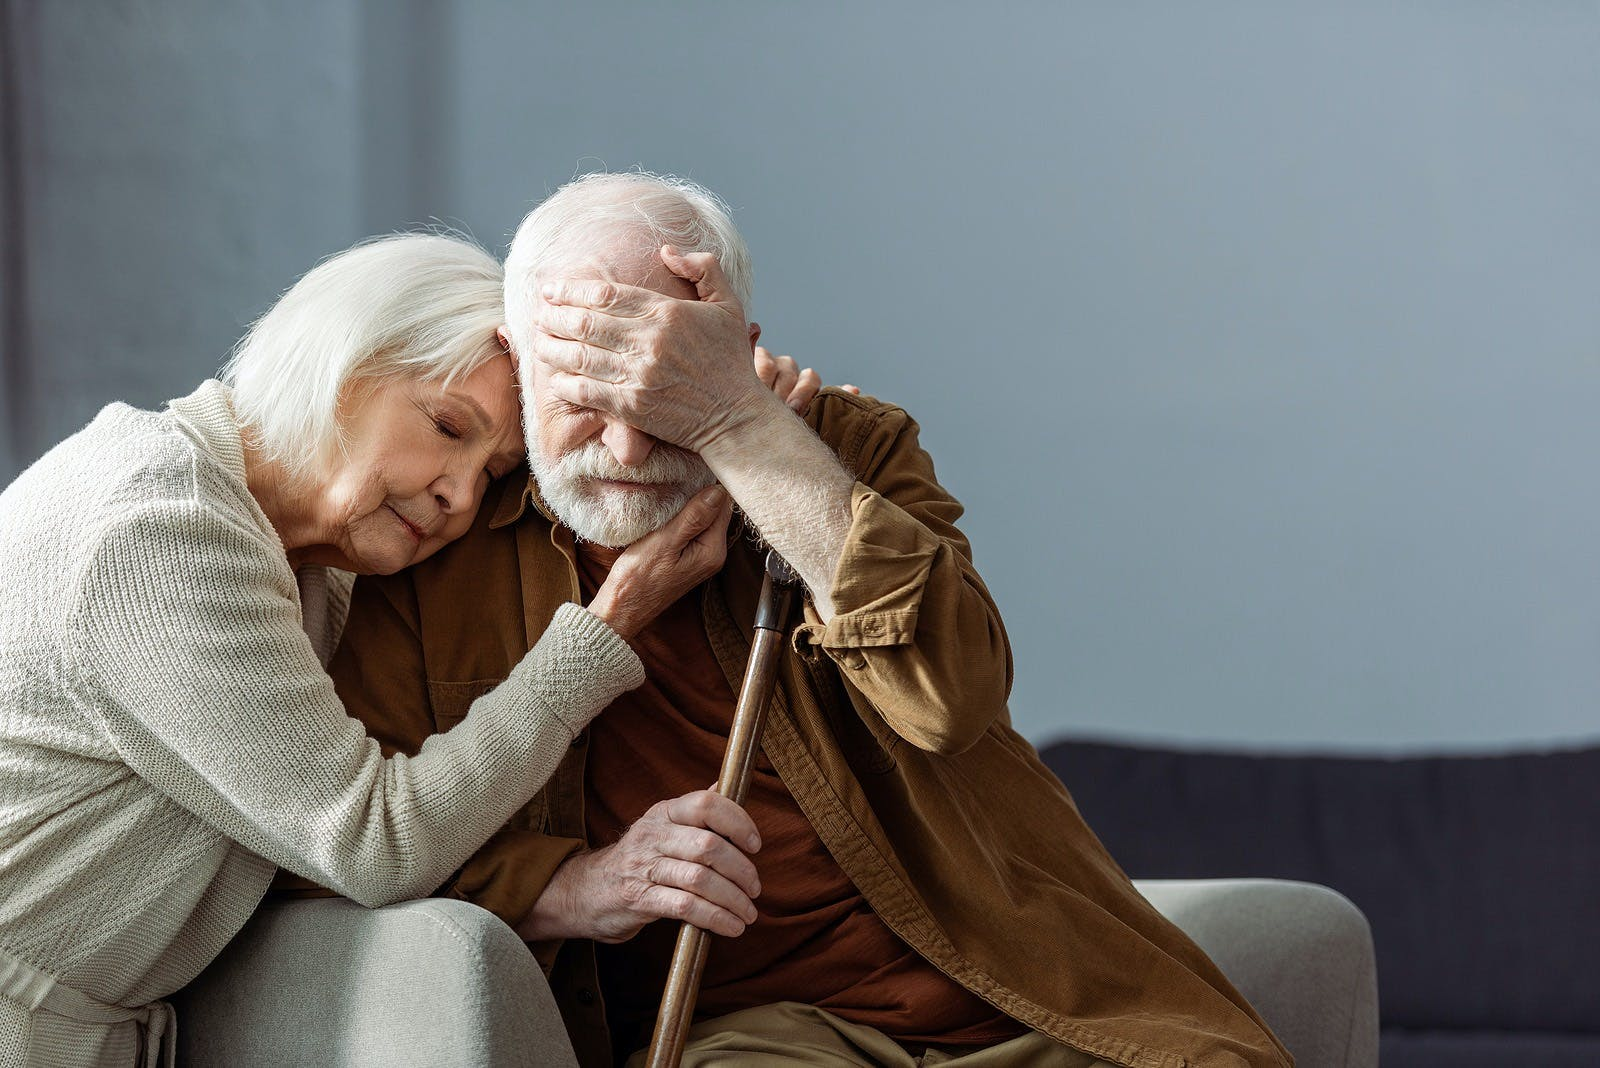 Senior man, sick on dementia, covering eyes with hand while wife embracing him with closed eyes